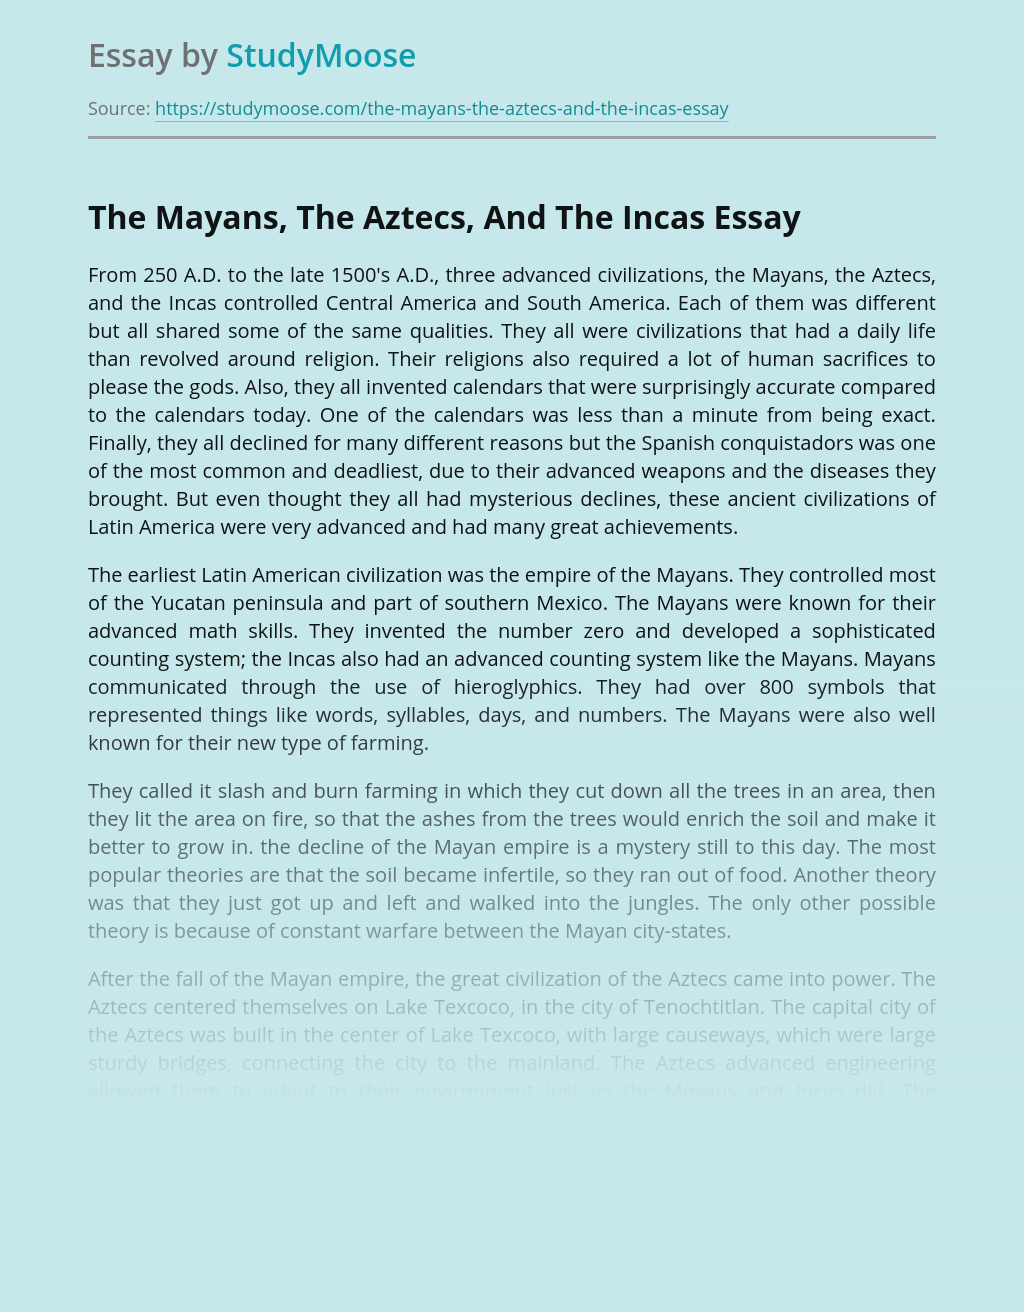 The Mayans, The Aztecs, And The Incas Civilizations